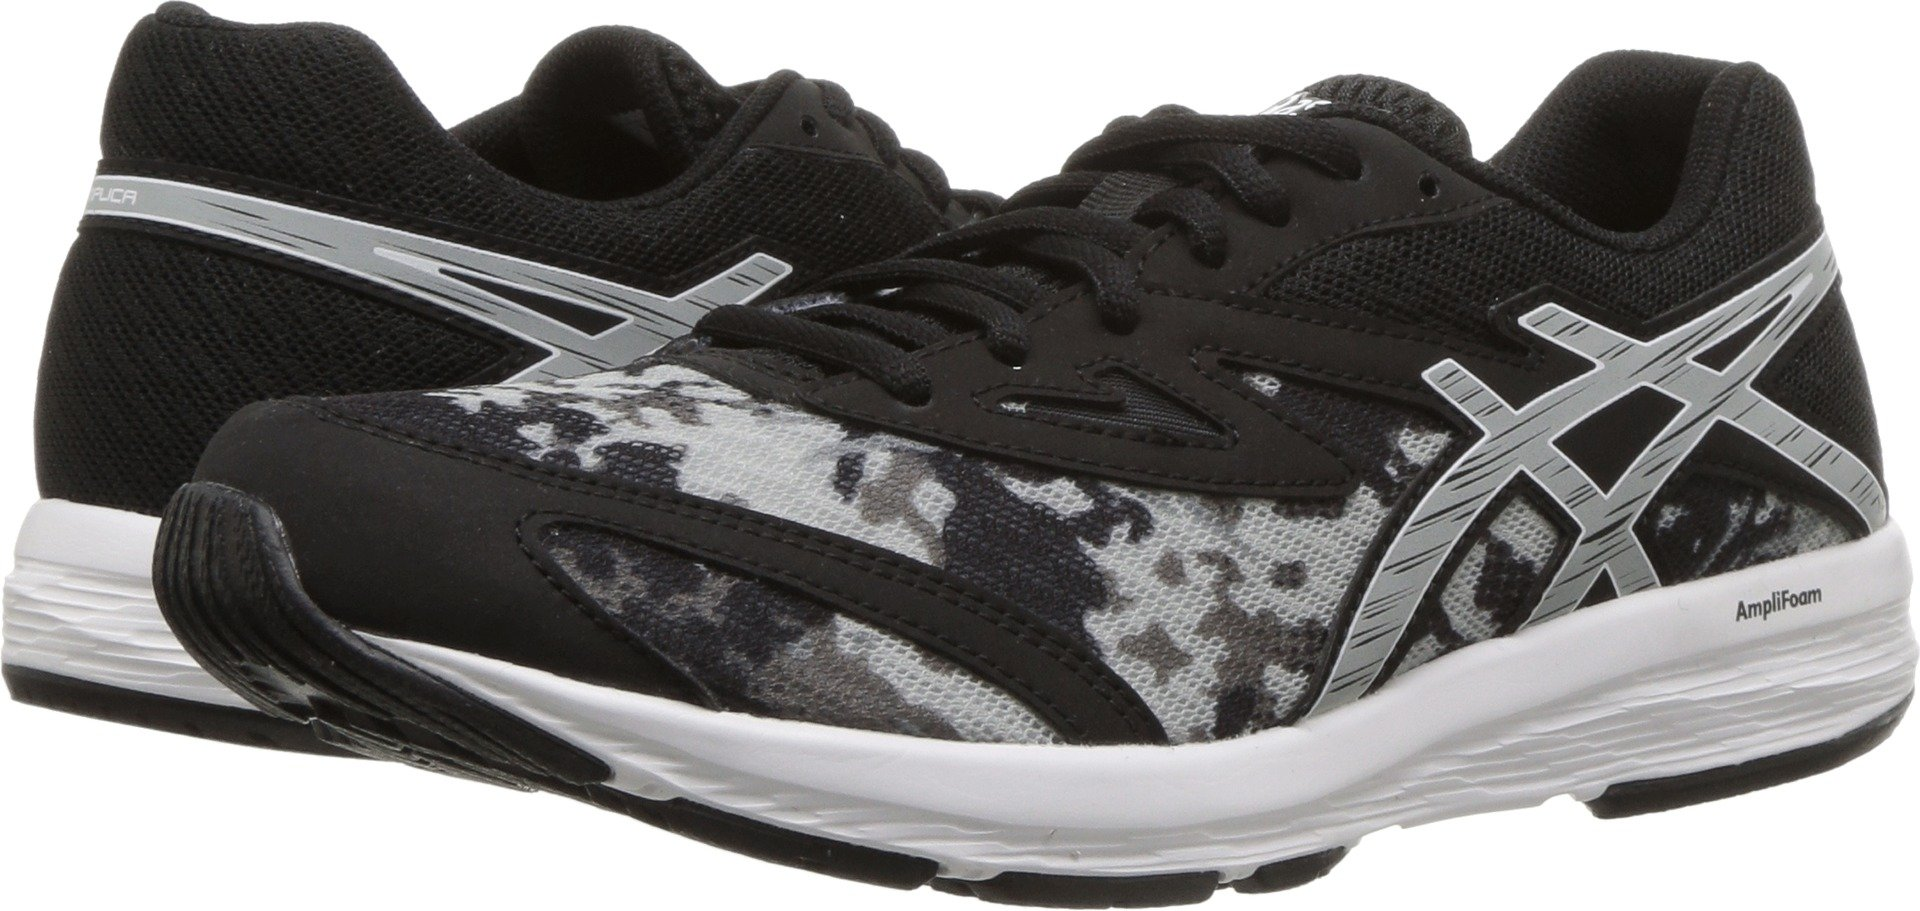 ASICS Youth Amplica Gs Black/Mid Grey 6 M